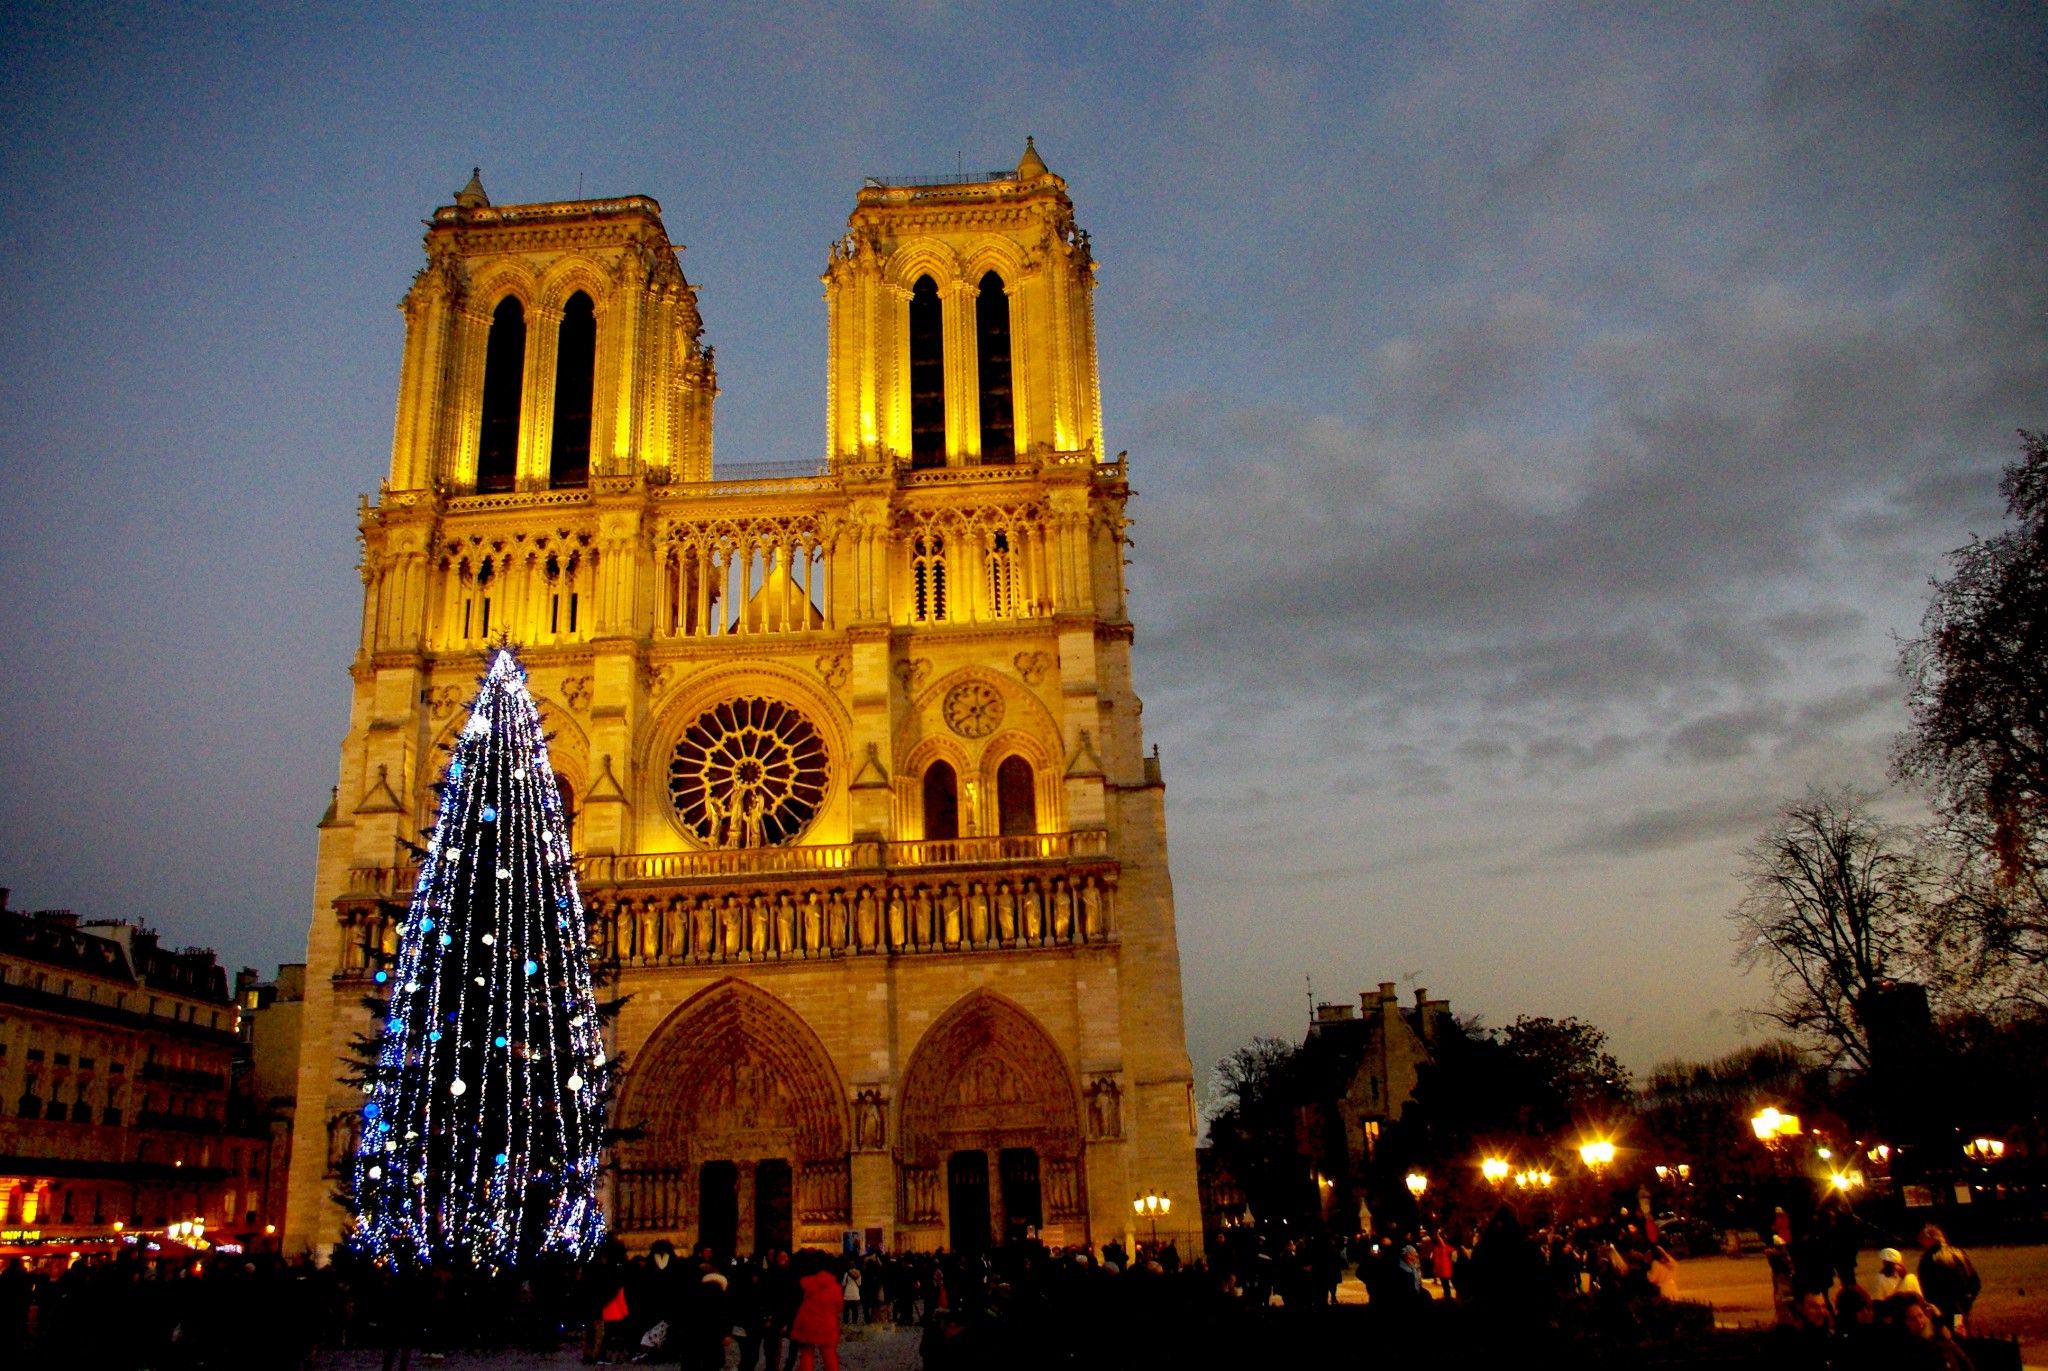 The Bells of Notre Dame | The Listeners' Club